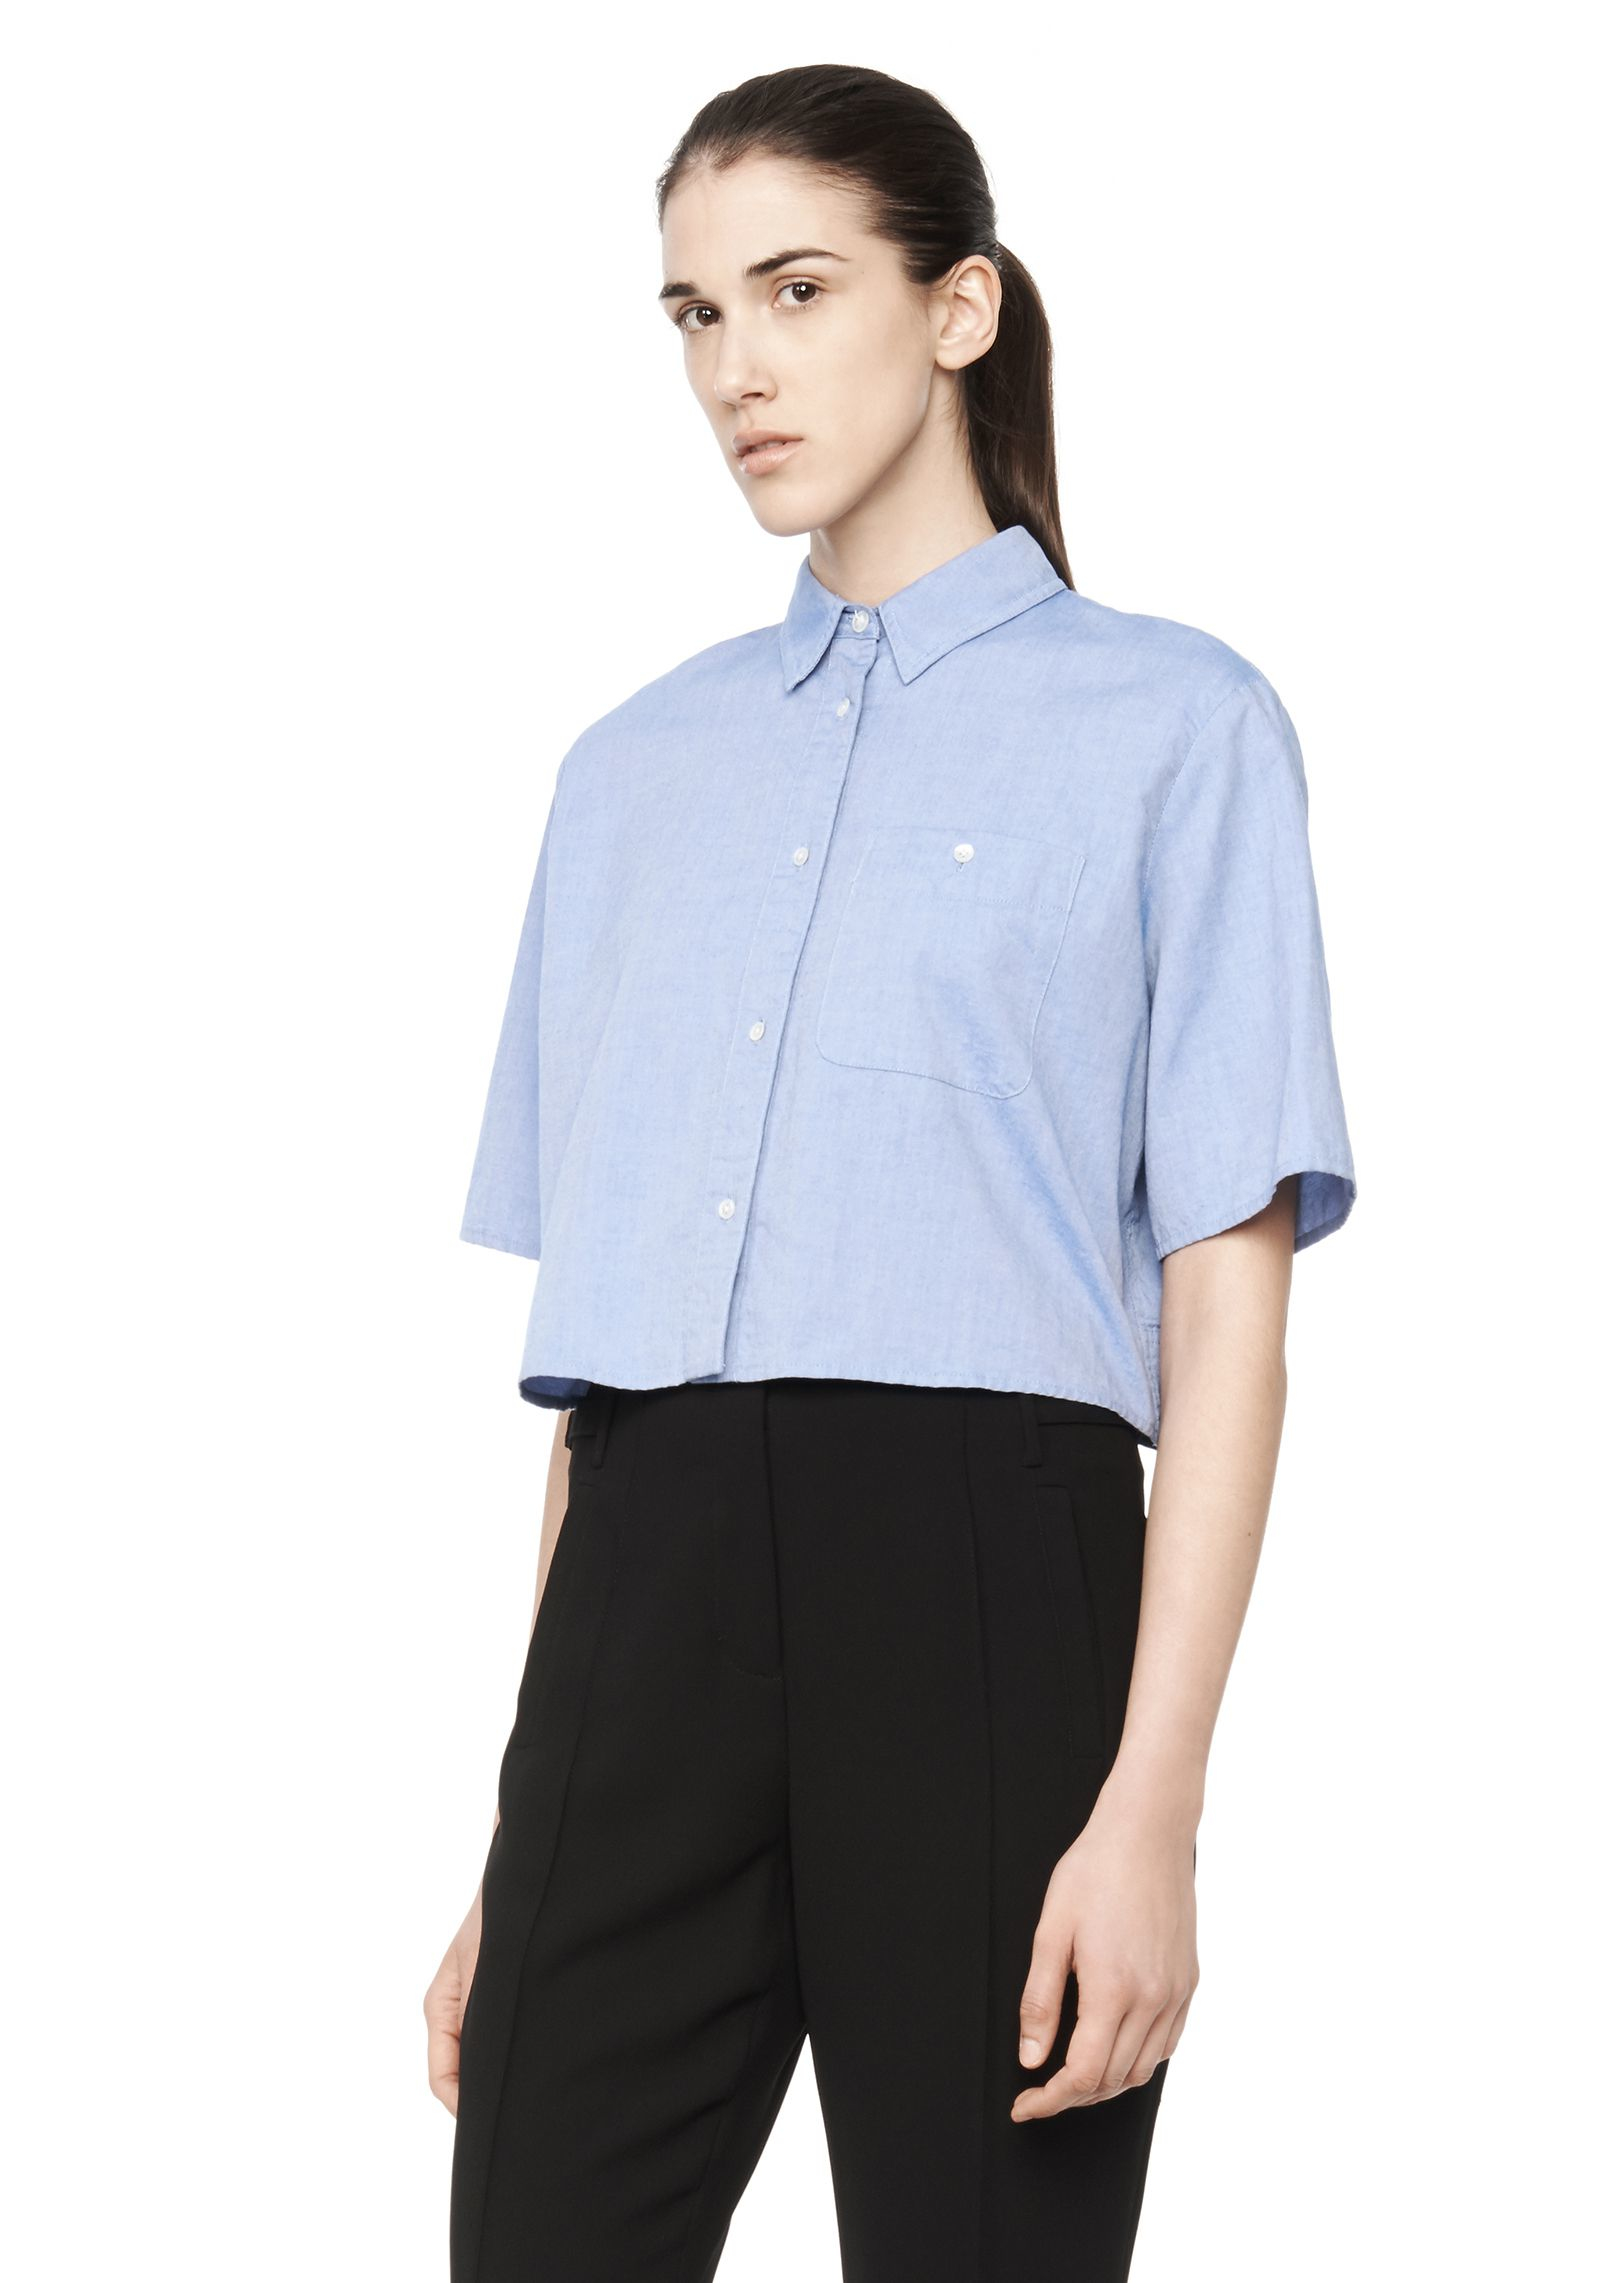 T by alexander wang Cropped Collared Oxford Shirt in Blue | Lyst